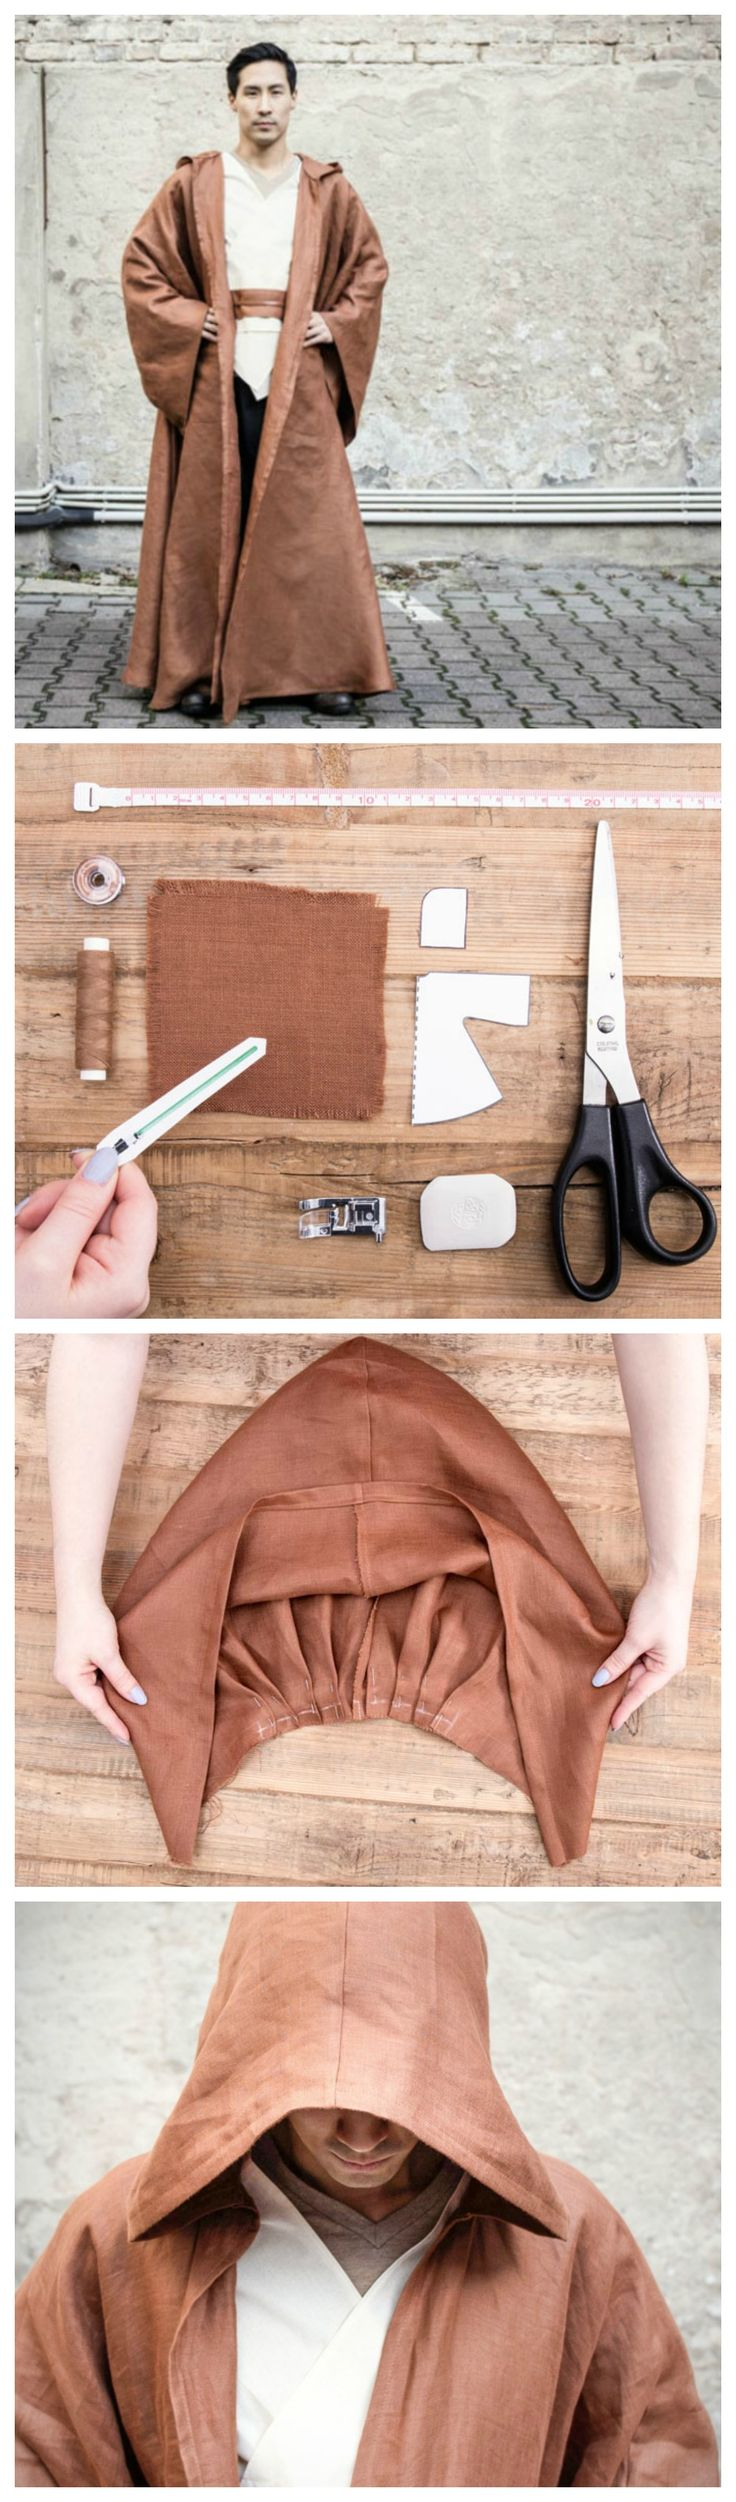 Kostenlose Nähanleitung: Näh Dir Deine eigene Jedi-Robe / free star wars diy tutorial: how to sew a jedi knight cape via DaWanda.com